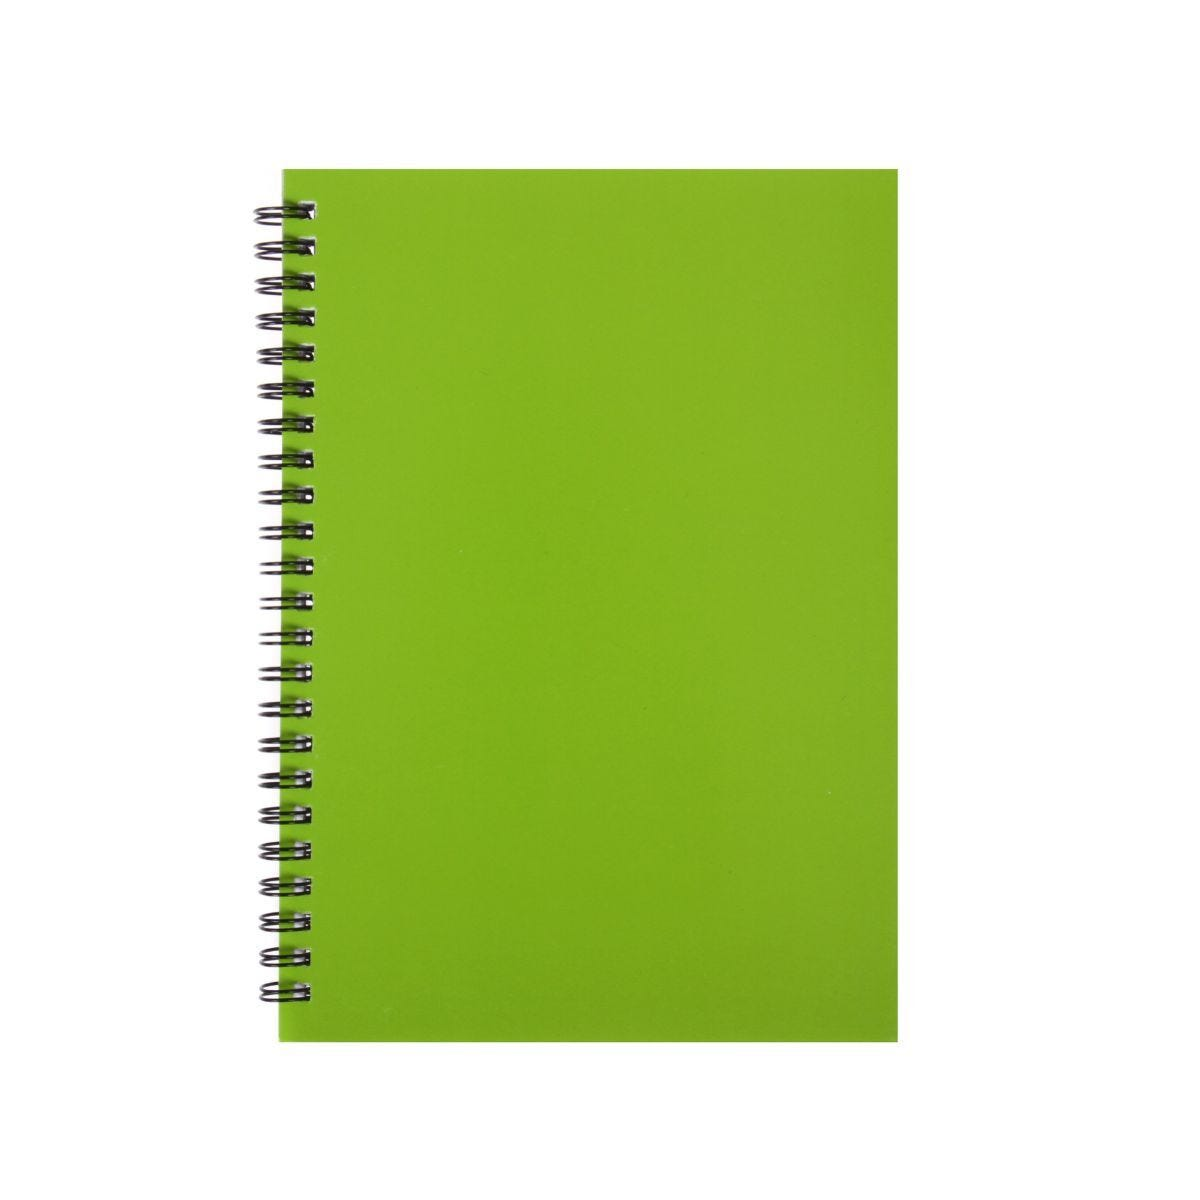 Ryman Essentials Notebooks A5 Ruled 80 Sheets Lime Green